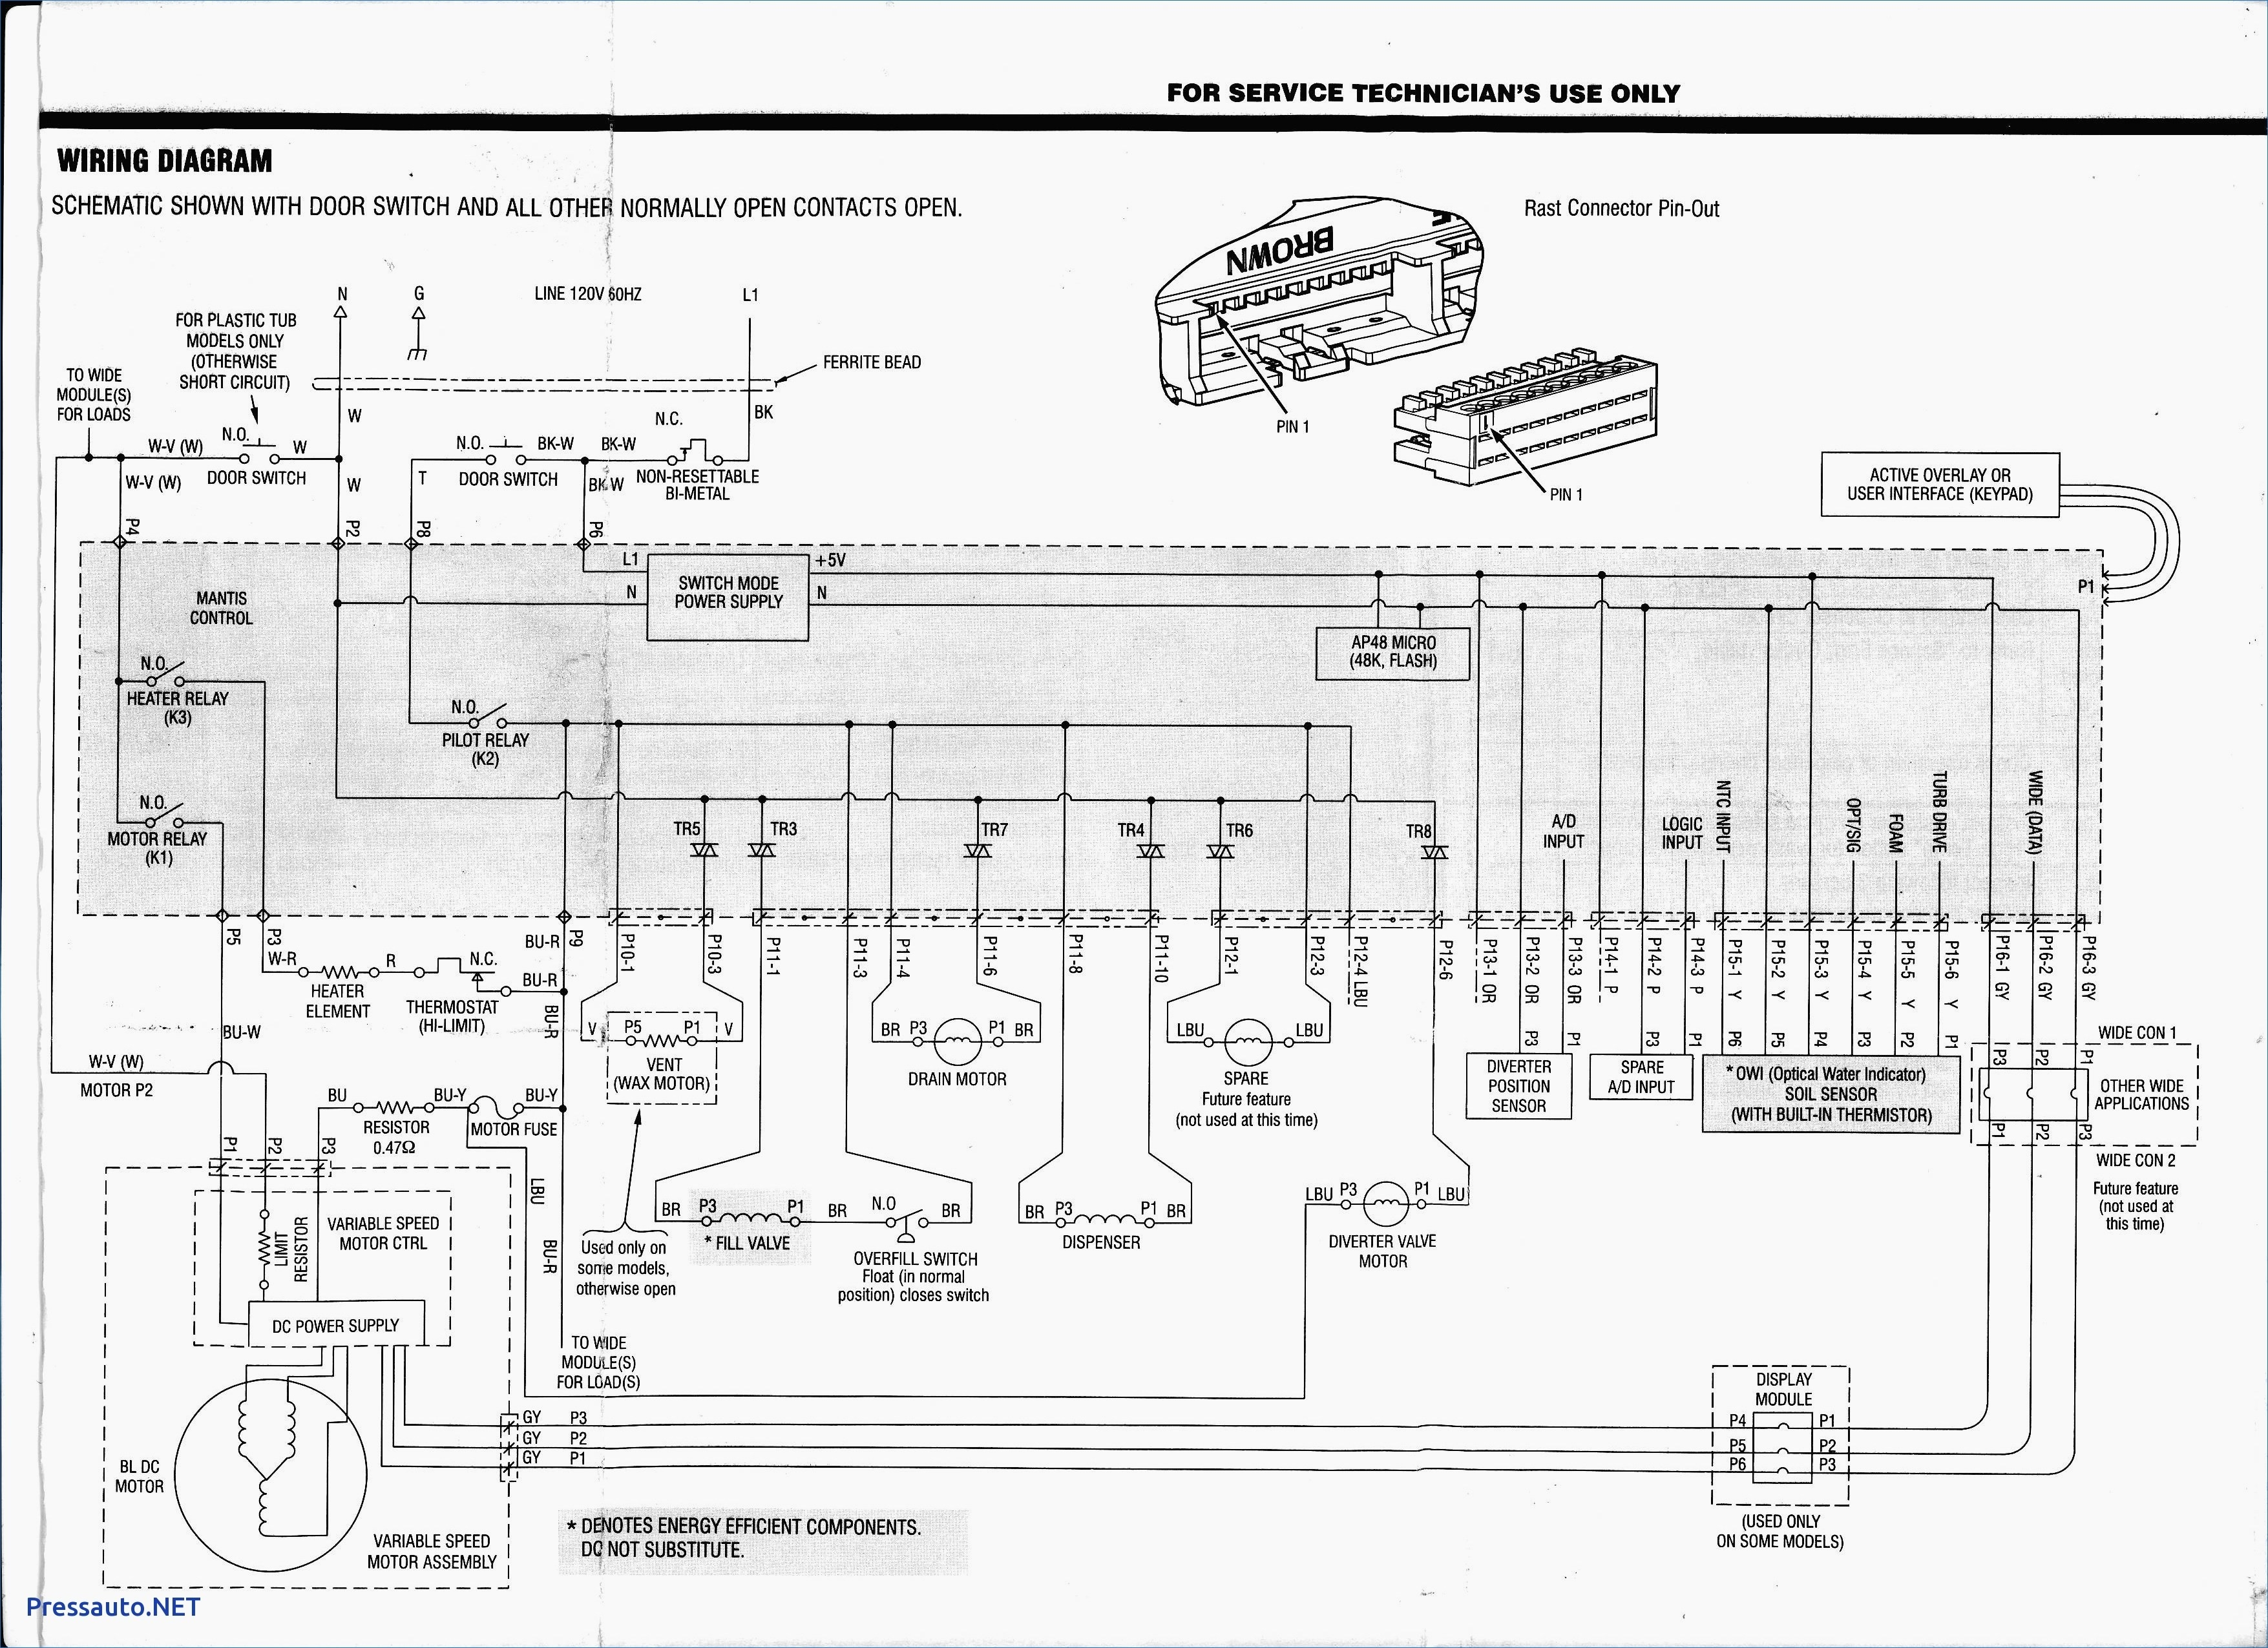 ge dryer wiring diagram Download-Wiring Diagram for A Ge Dryer Inspirationa Ge Dryer Wiring Diagram 16-p